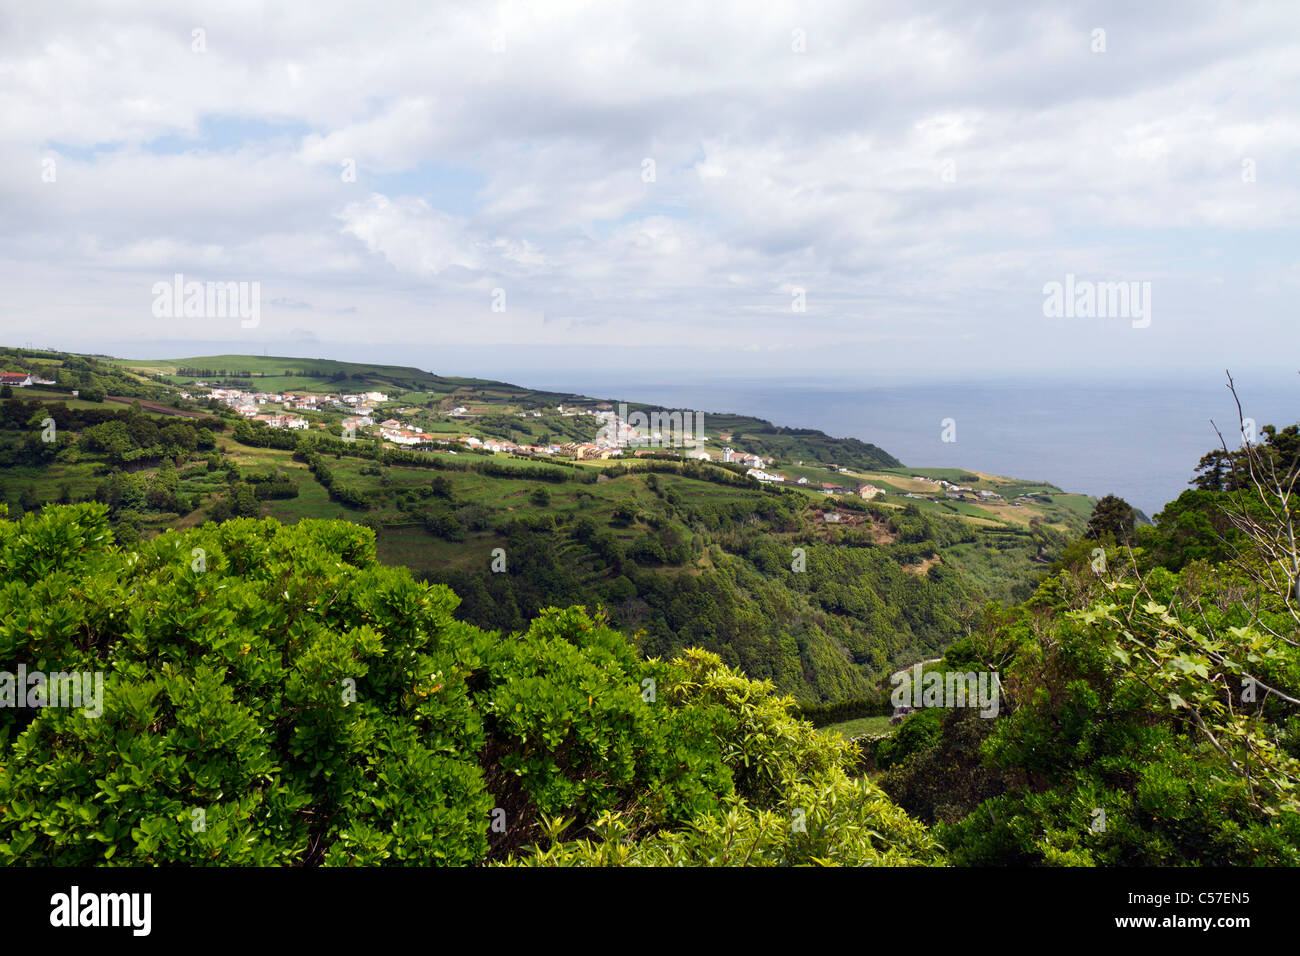 View from the Sossego viewpoint, São Miguel island, Azores, Portugal - Stock Image